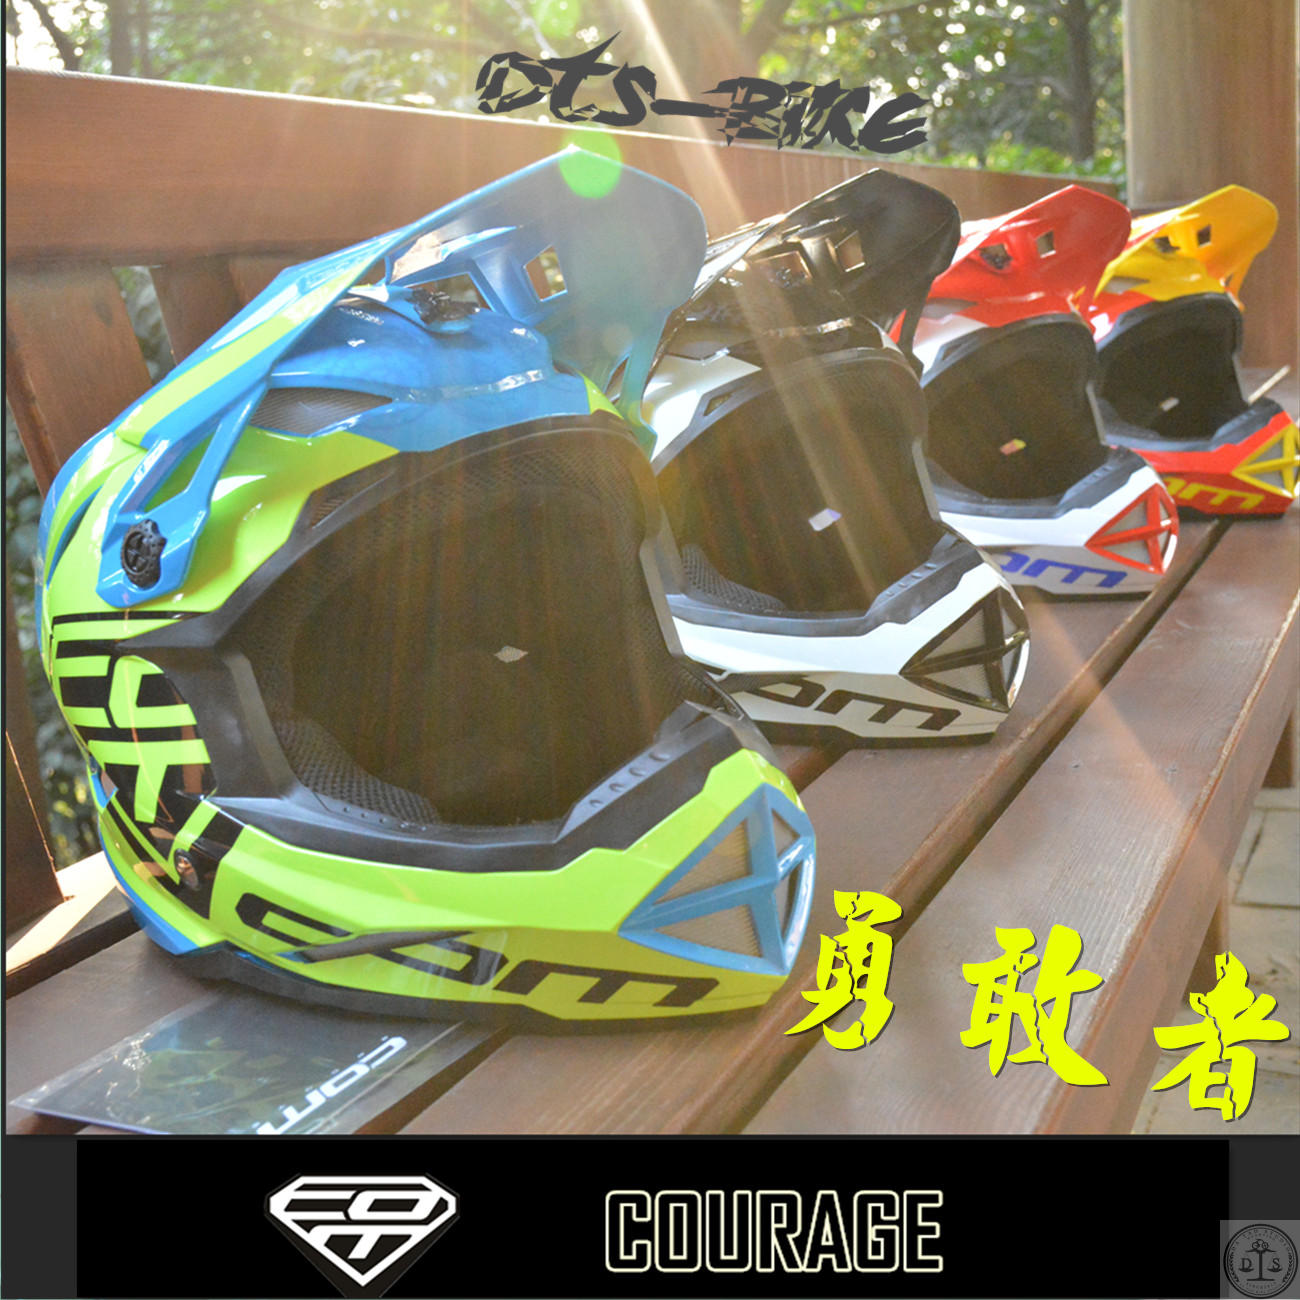 COM Camry Courage Courage / Brave Mountain Downhill Cross Country Helmet DH/AM Full Helmet All-round Protection